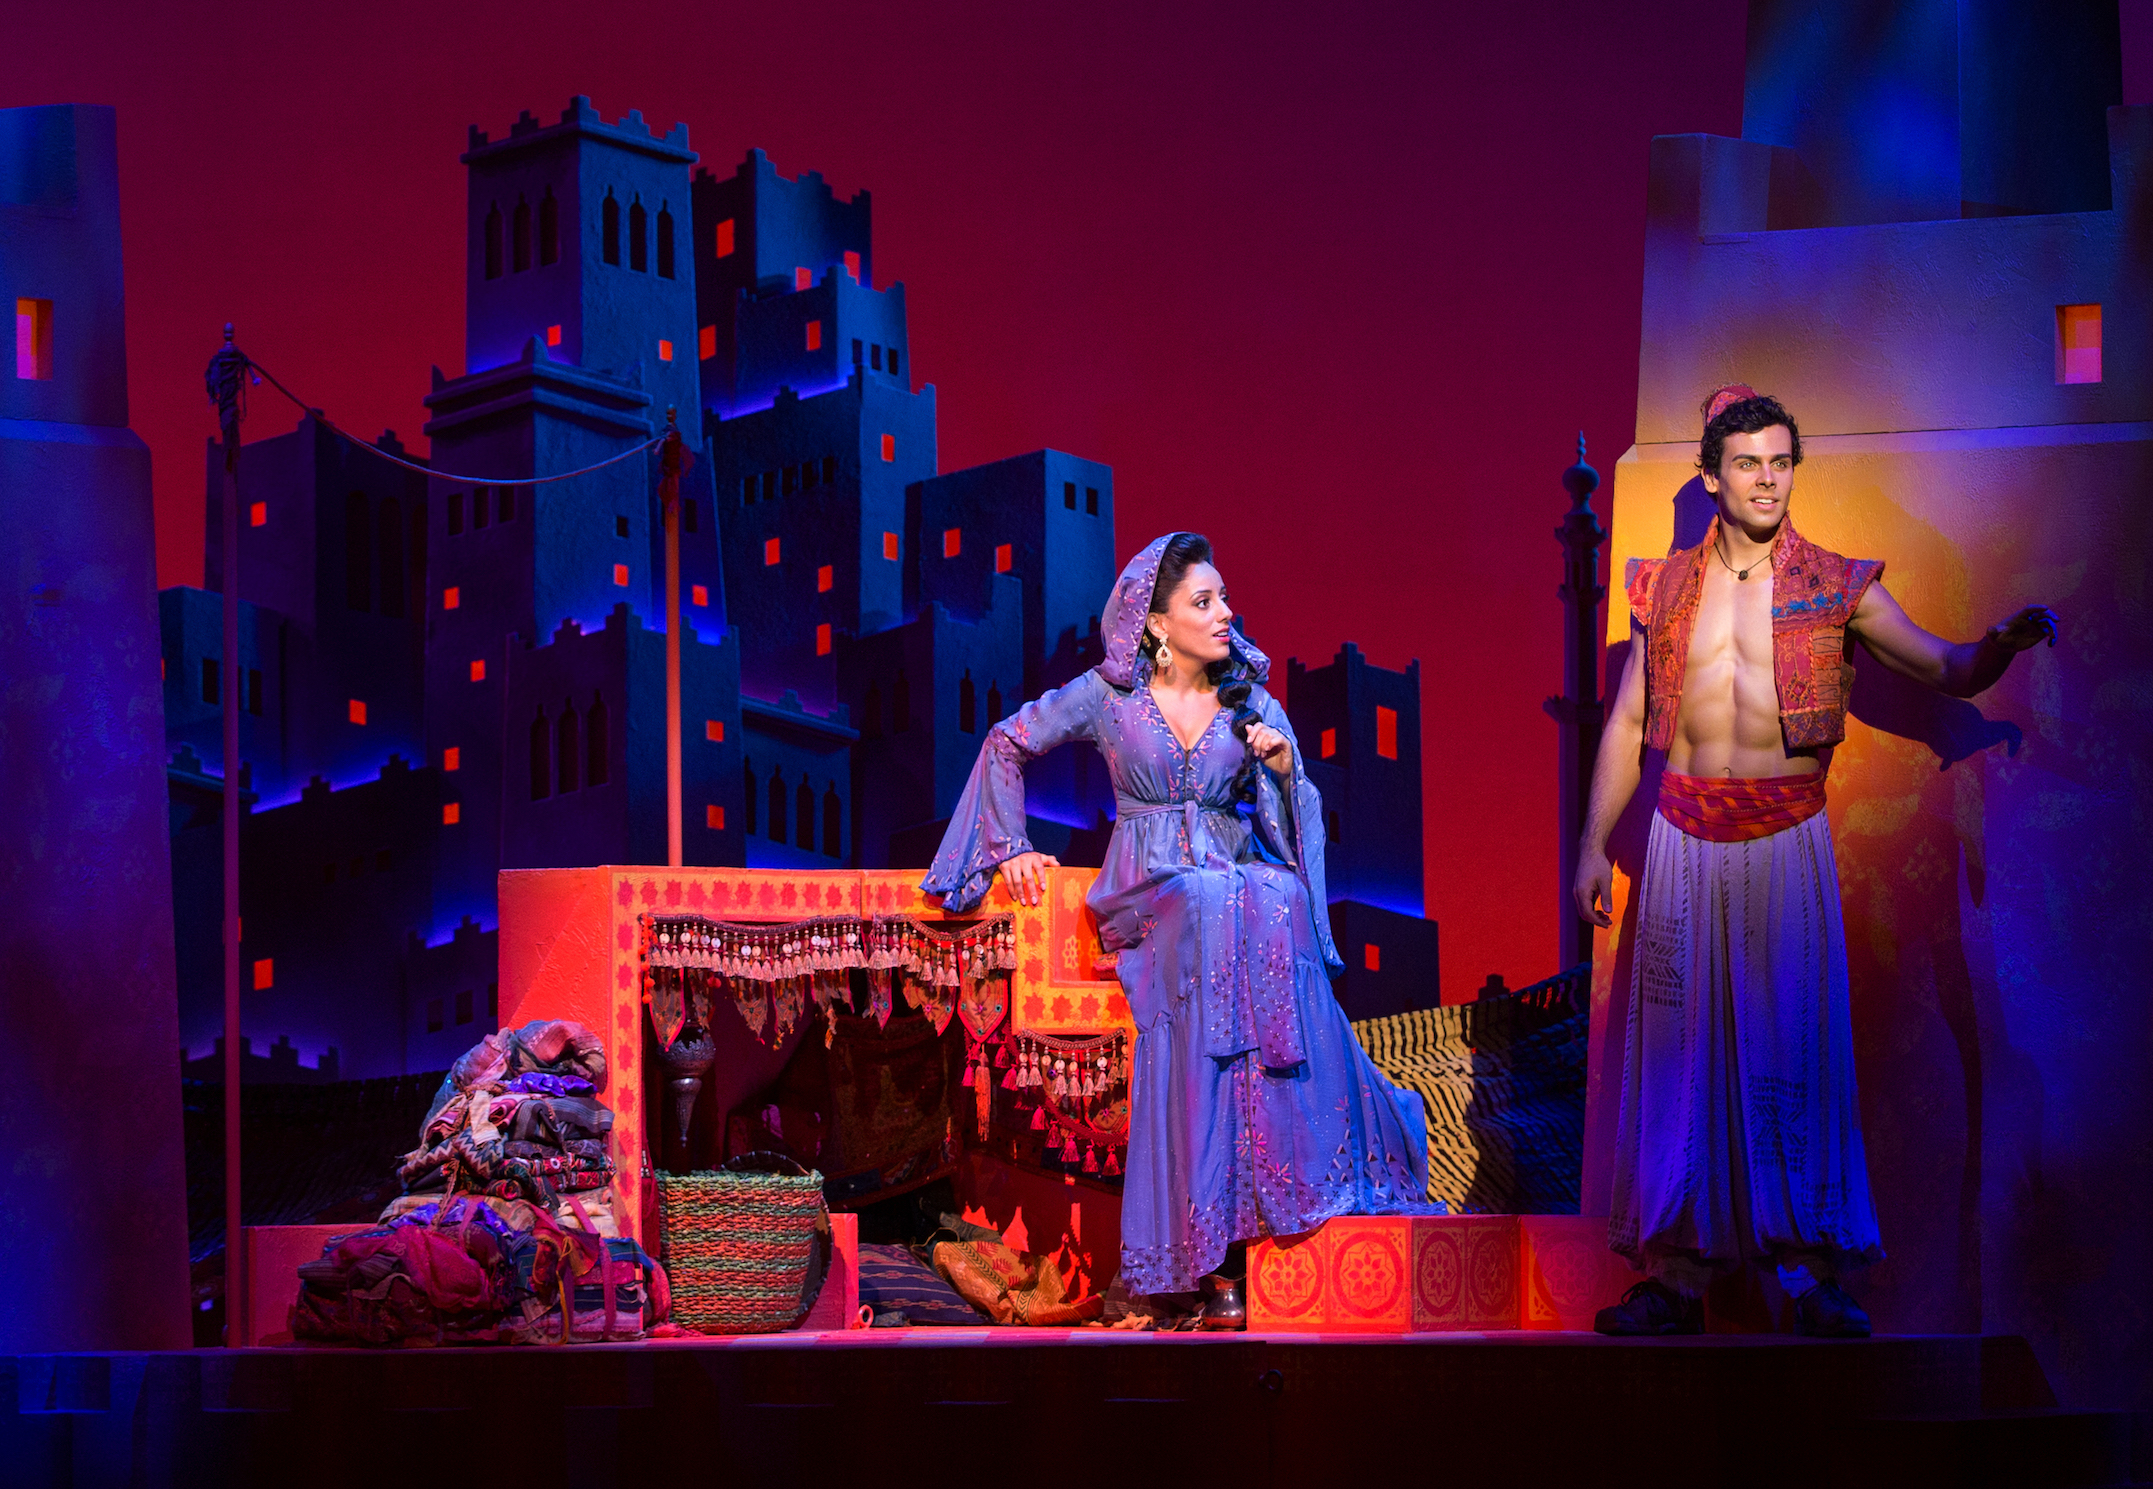 Aladdin and Jasmine - Disney.jpg